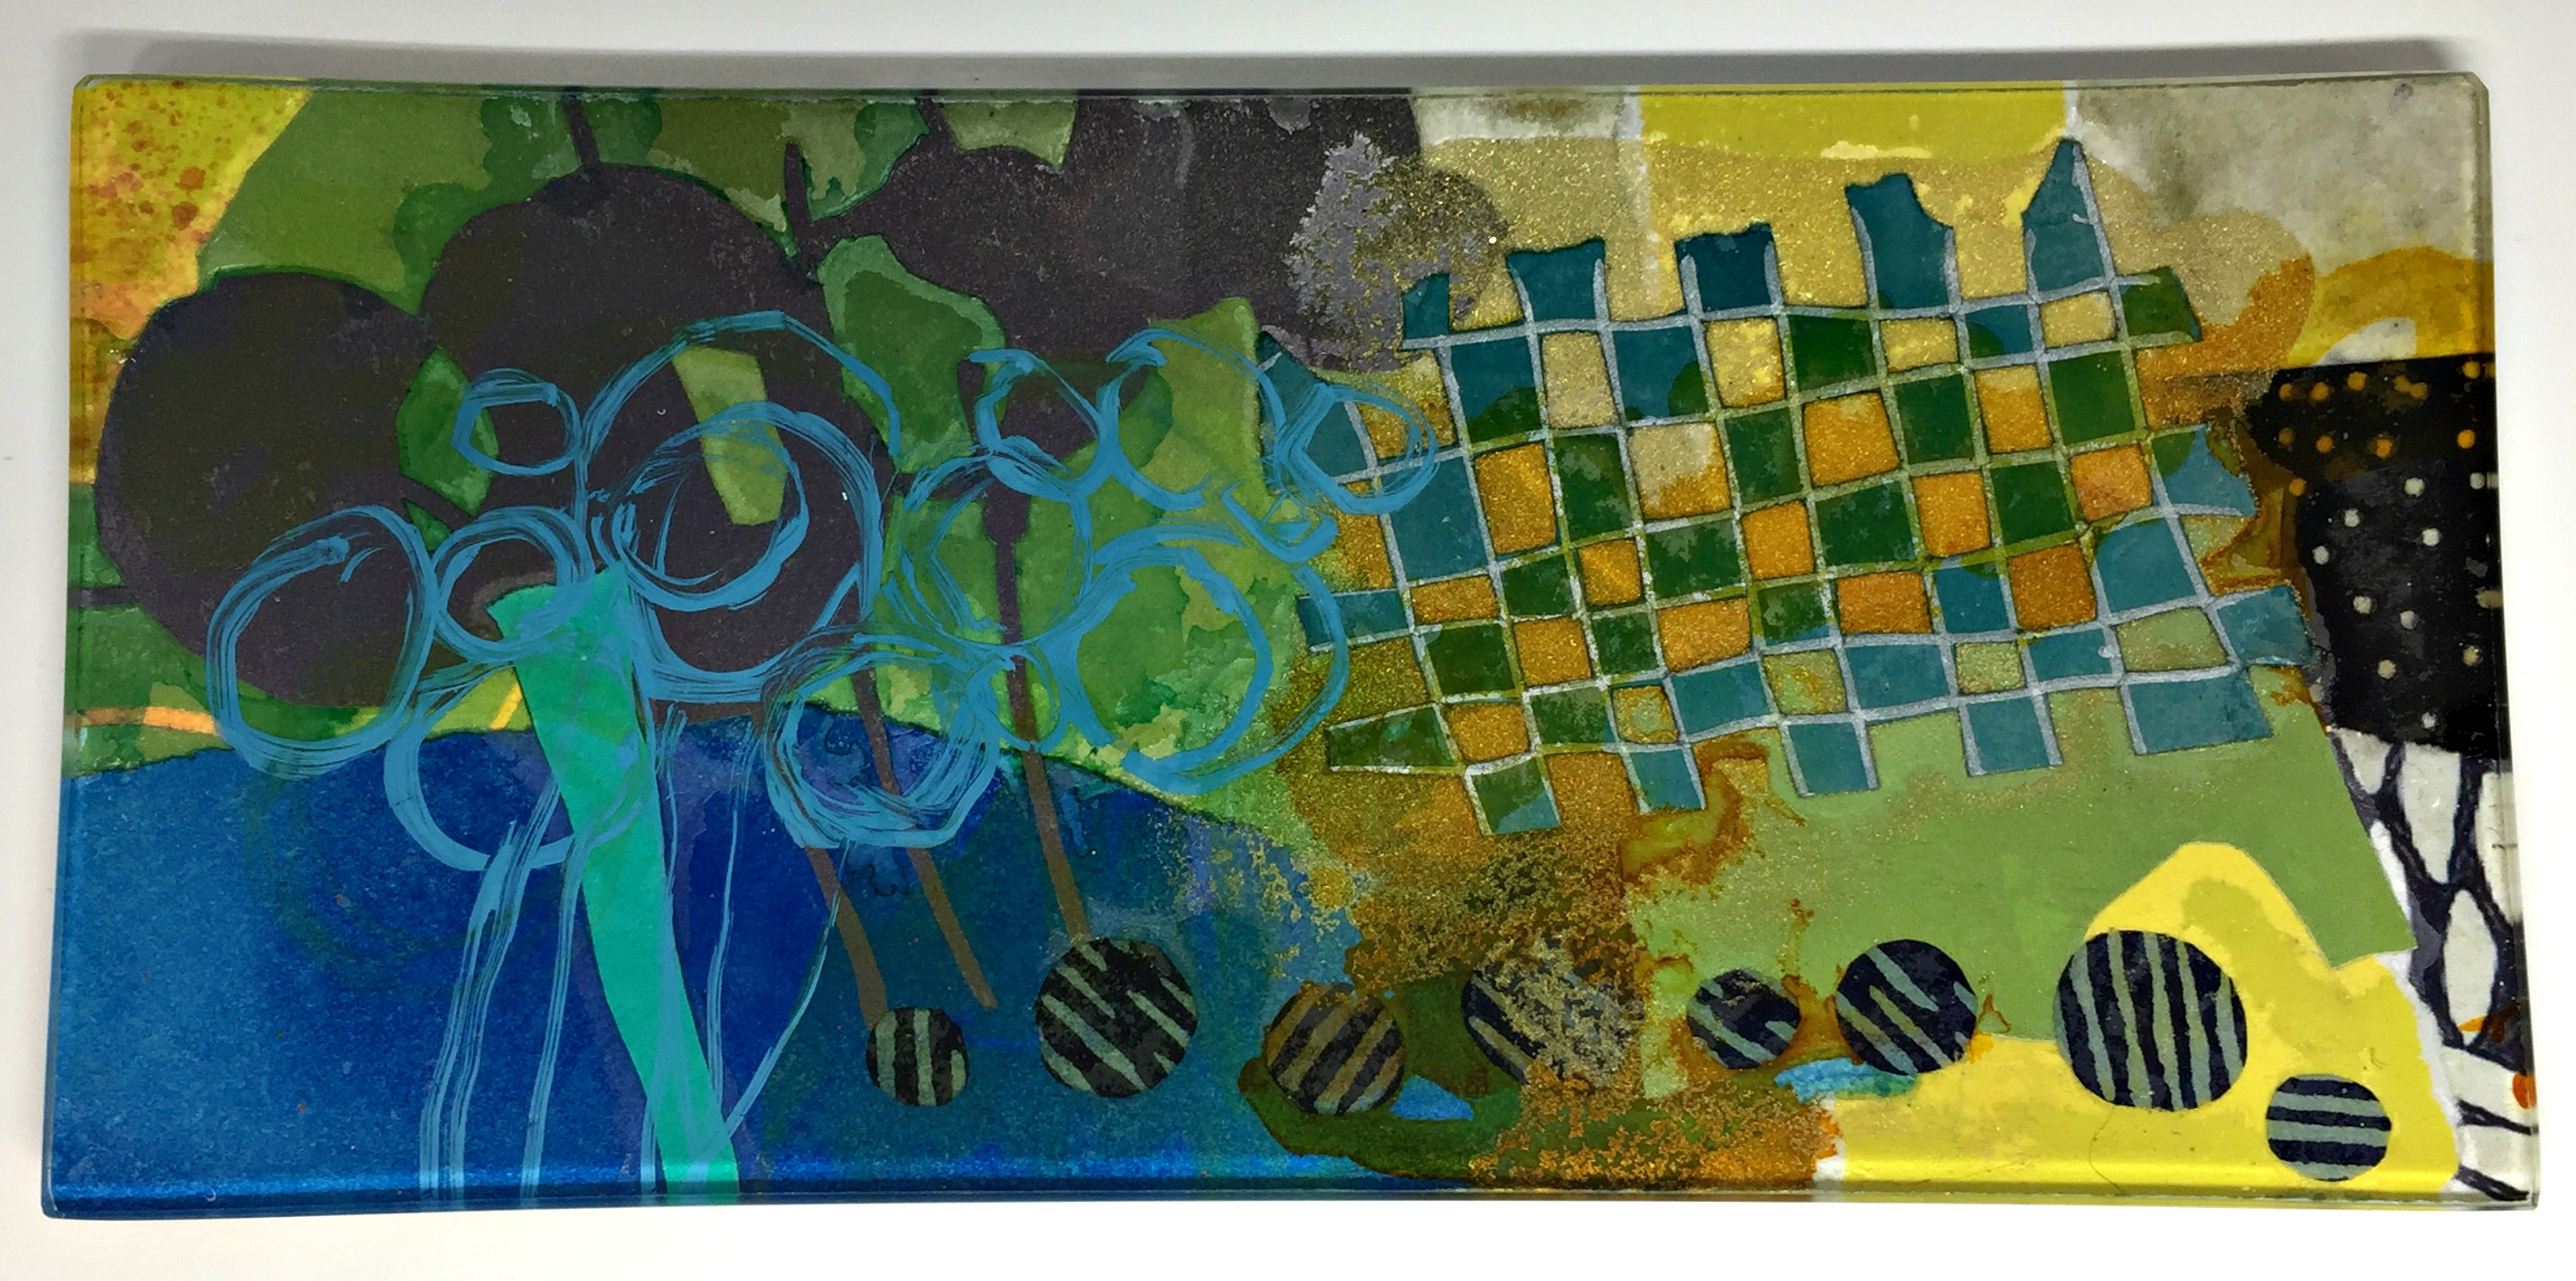 View Over Fields, glass mini platter by Julie Bell | Effusion Art Gallery + Cast Glass Studio, Invermere BC